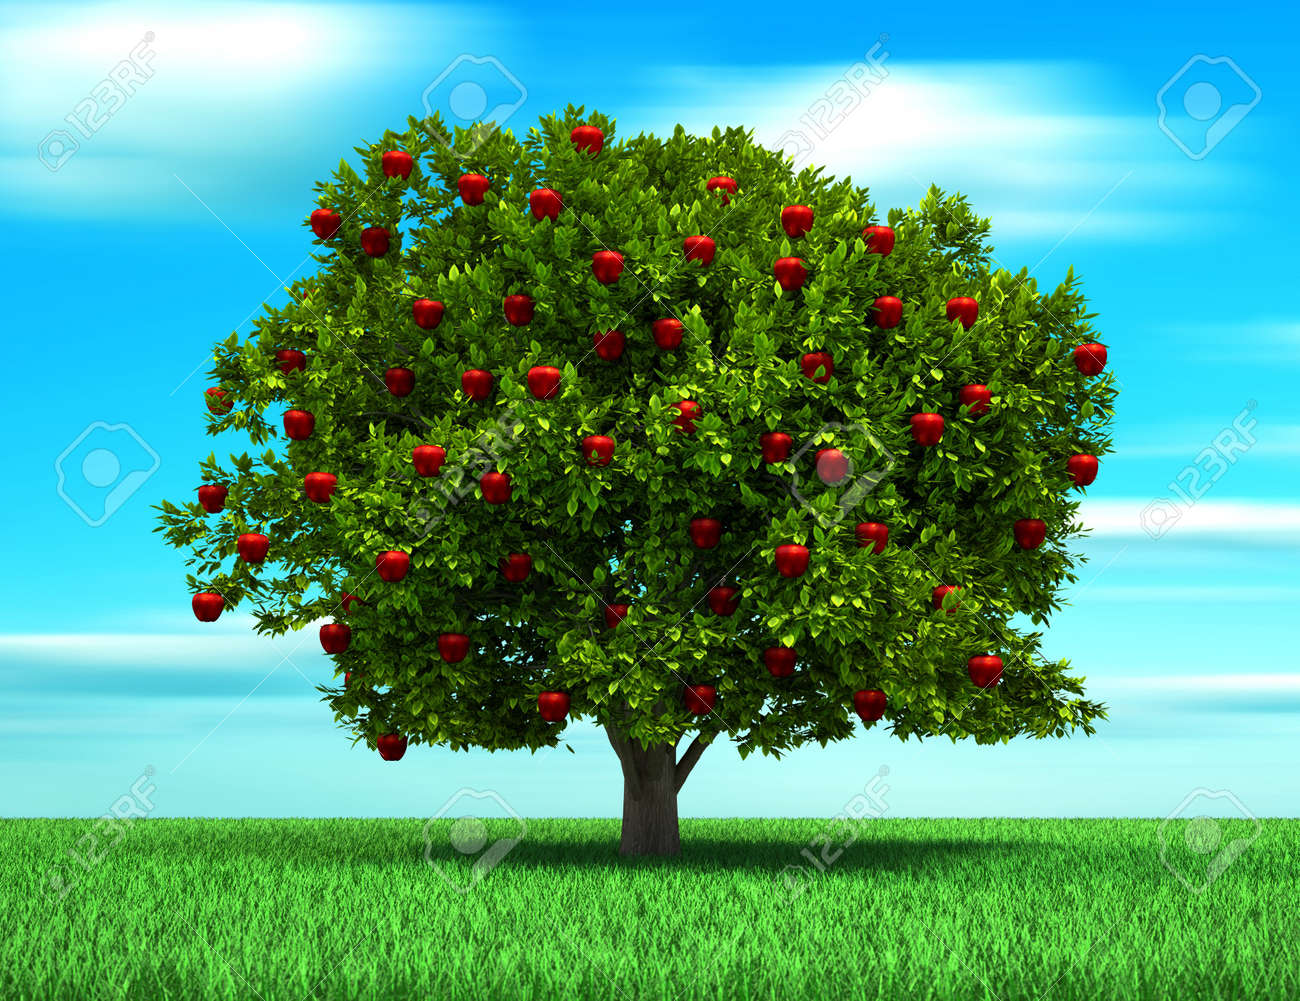 Tree with apple fruits, surreal and conceptual look - 3d render illustration - 8041825